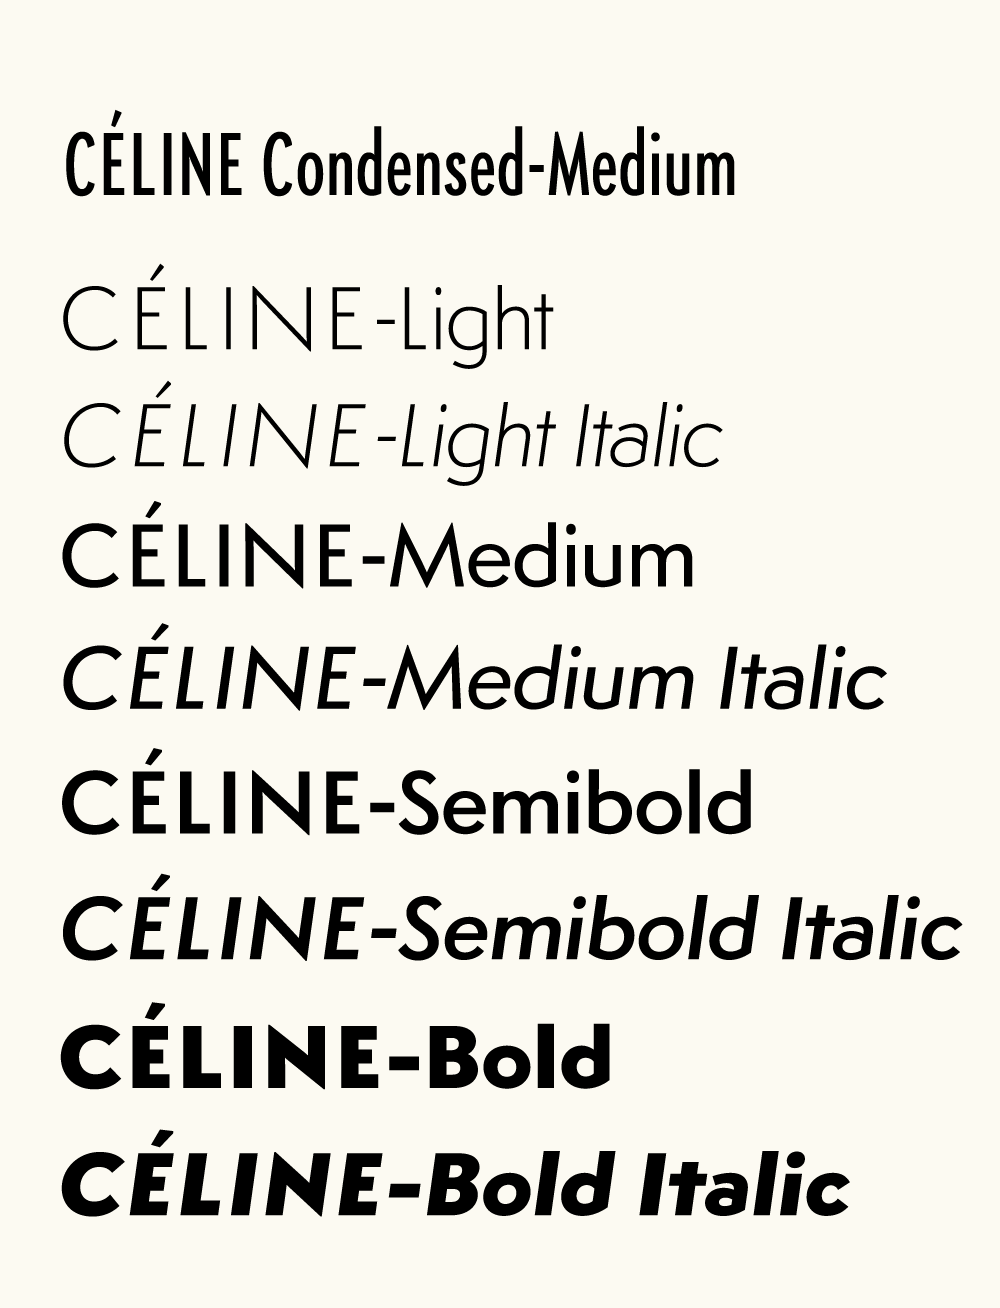 Céline - All styles of the new corporate font